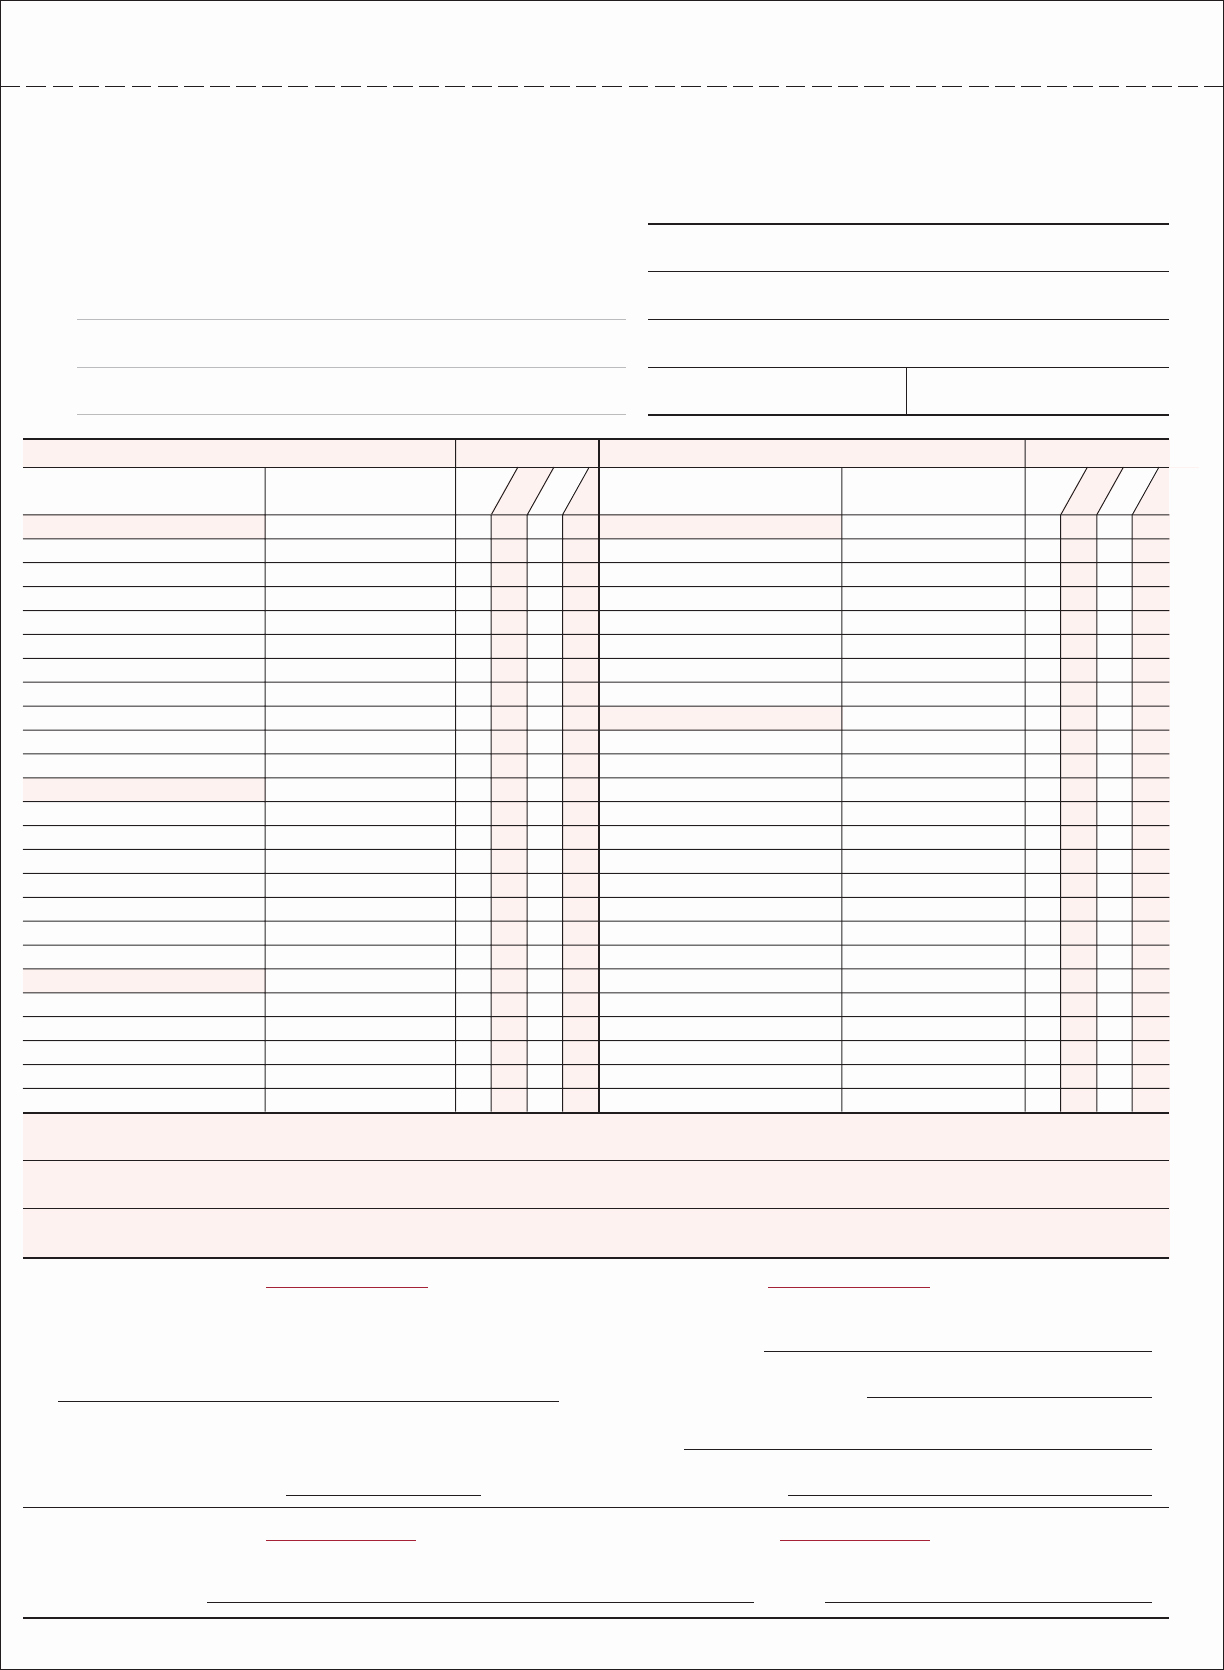 Free Cleaning Proposal Template Lovely Download Fice Cleaning Proposal Template for Free